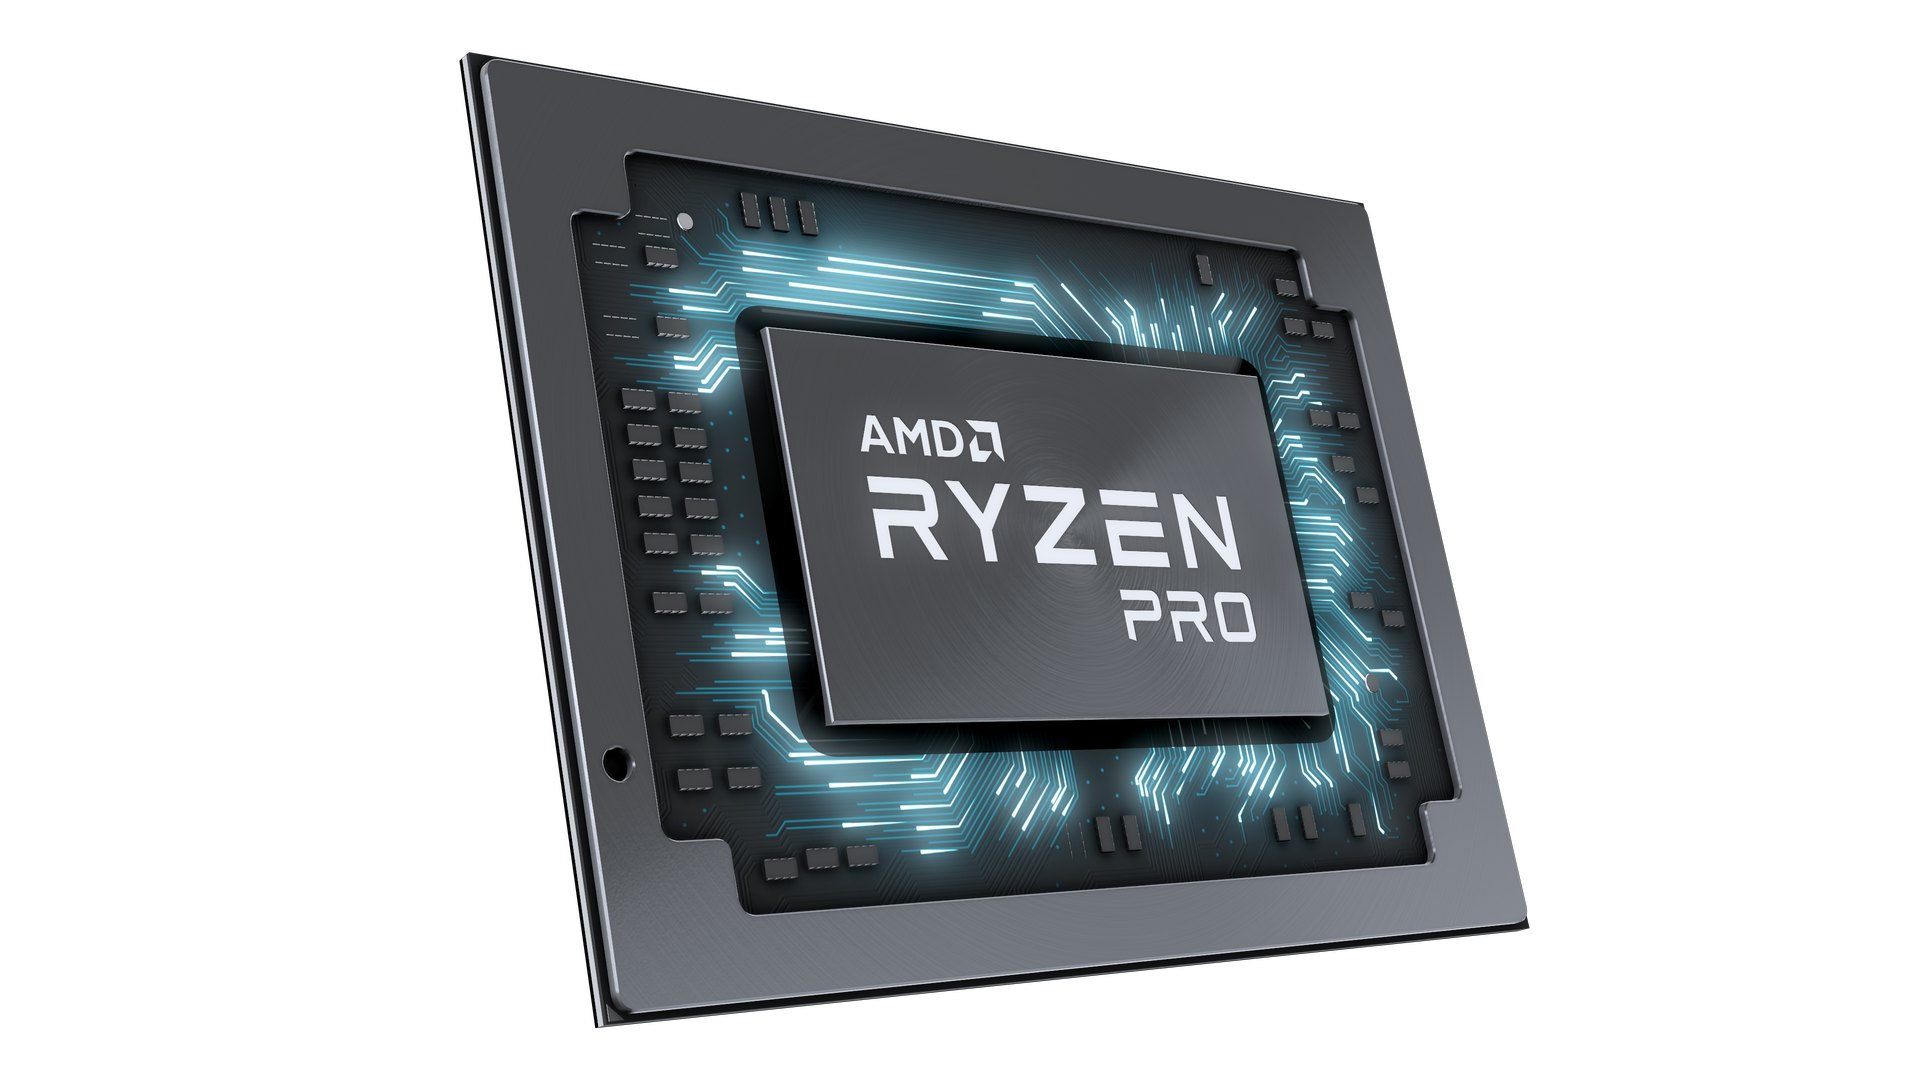 AMD Ryzen PRO Mobile Chip Shot 04